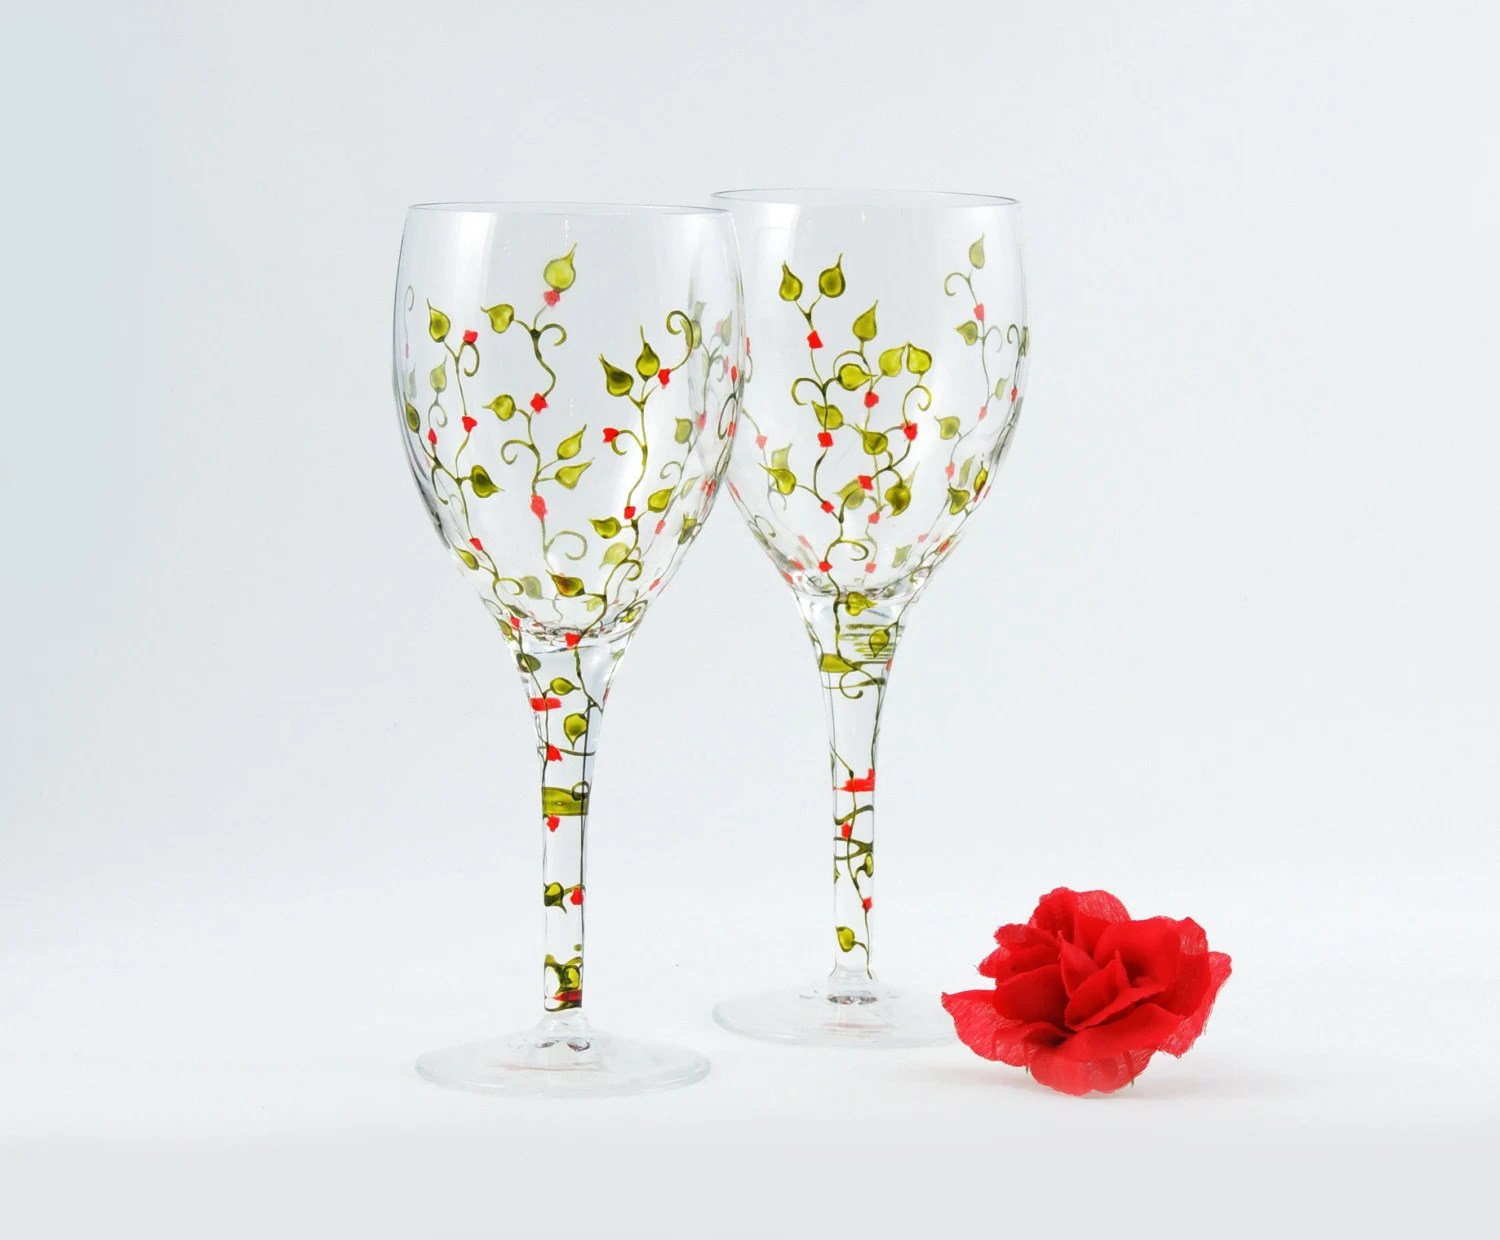 High Quality Wine Glasses Hand Painted Wine Glasses Set Of 2 High Quality White Wine